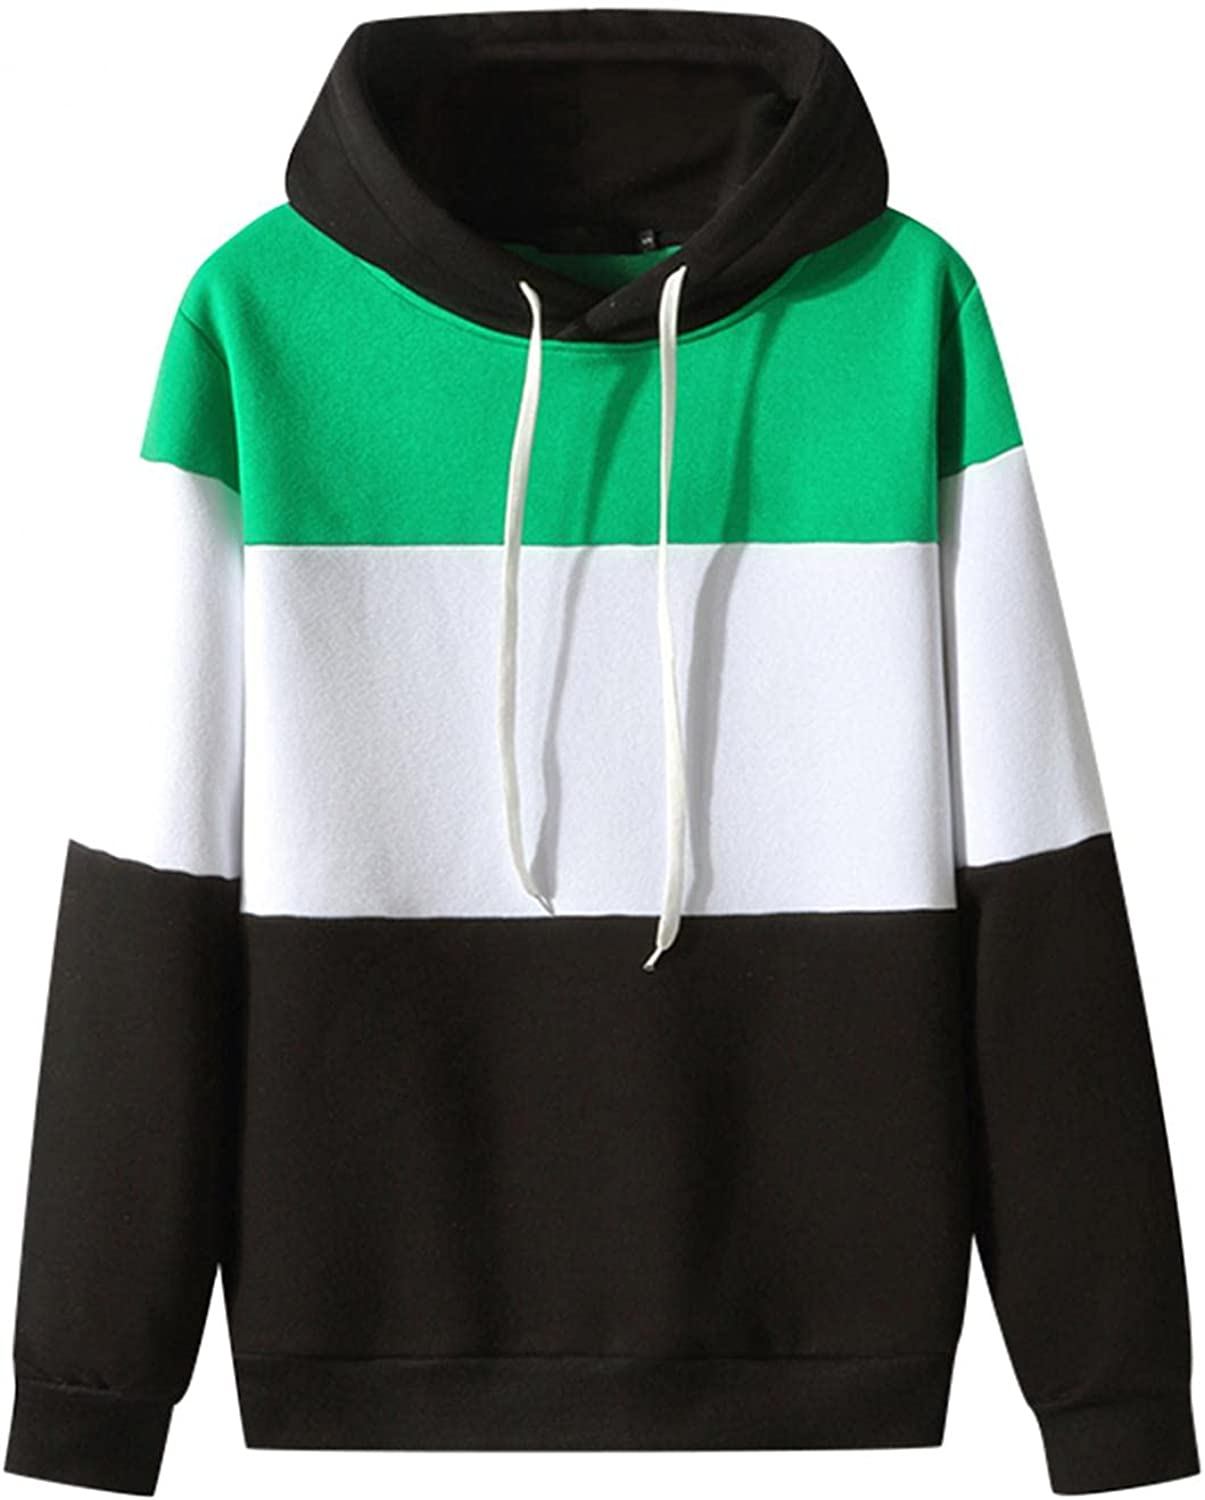 Super sale period limited Crewneck Sweatshirts Men Complete Free Shipping Novelty Color Pullover Hooded Fle Block